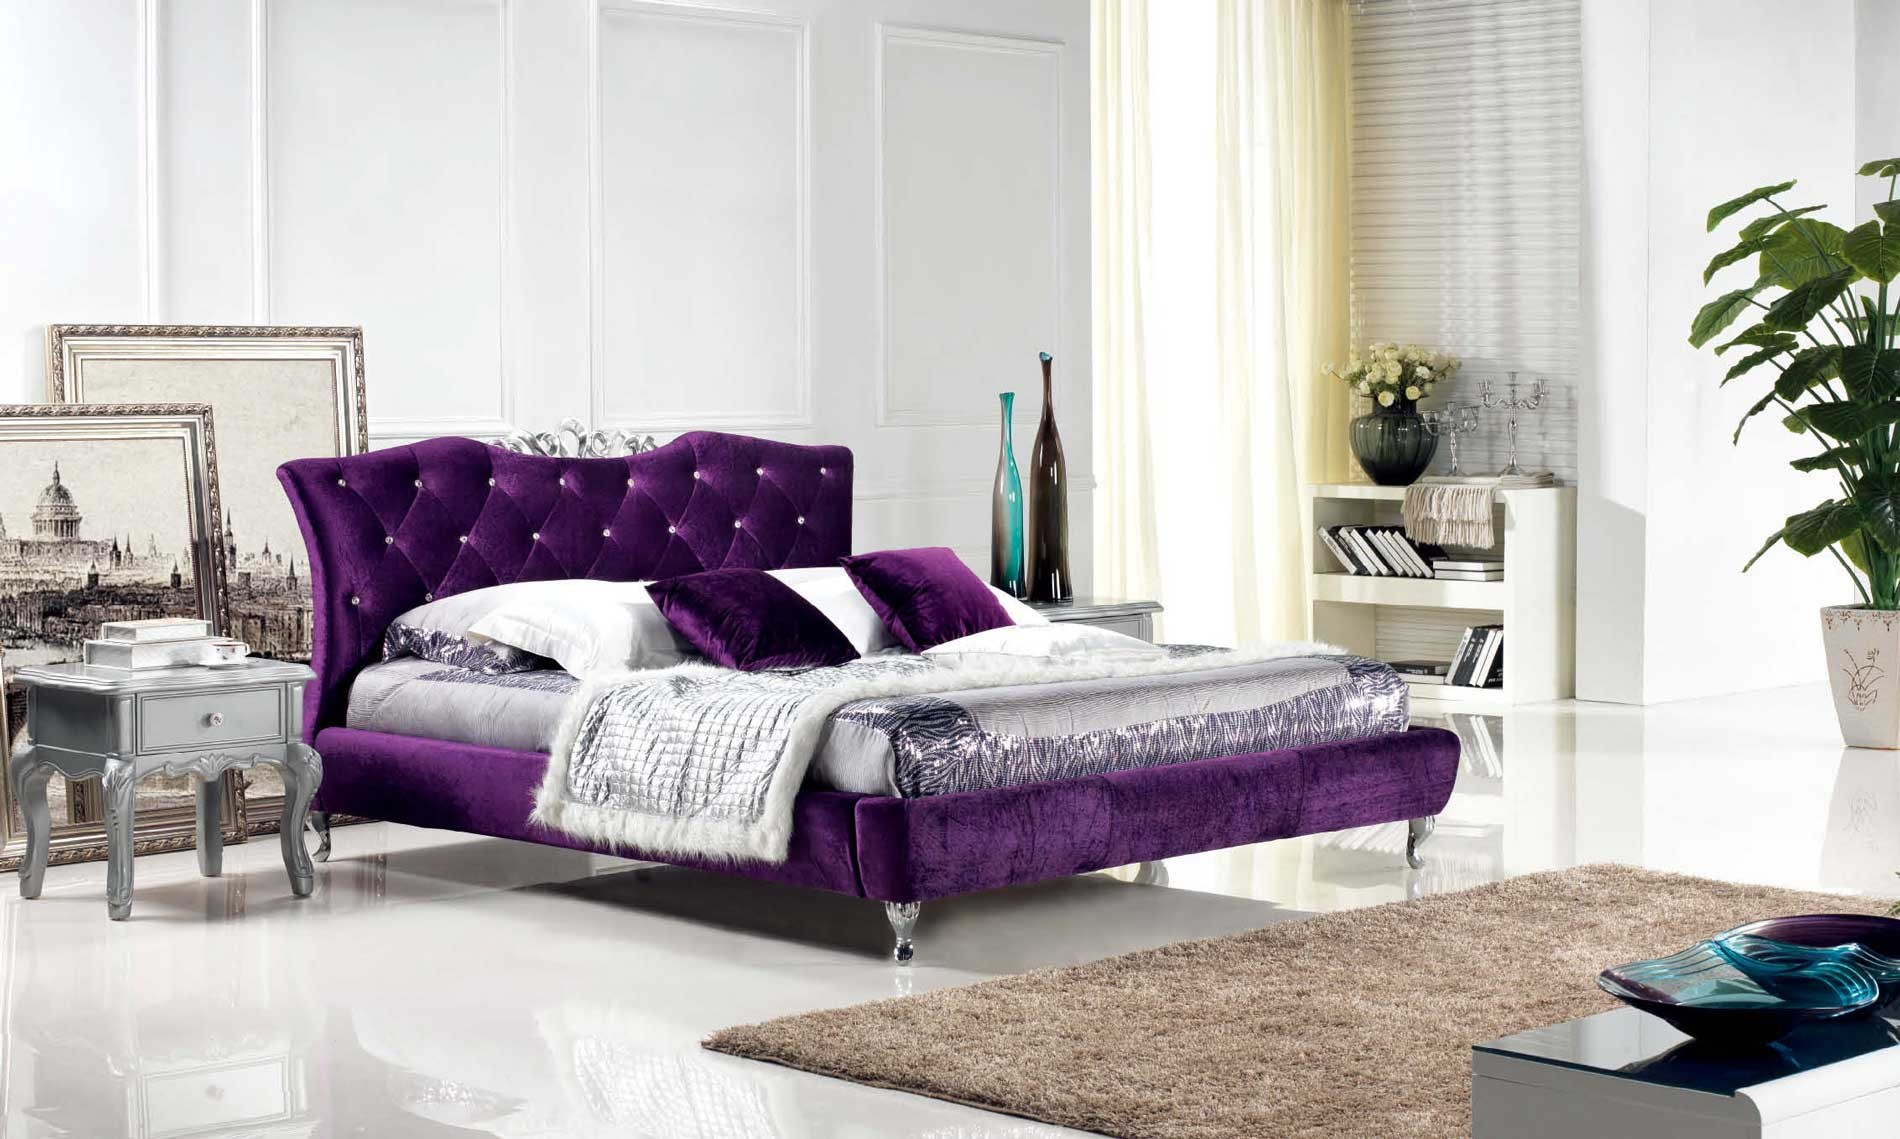 Bedroom Furniture Perth aura modern bedrooms | custom made luxury beds | online furniture